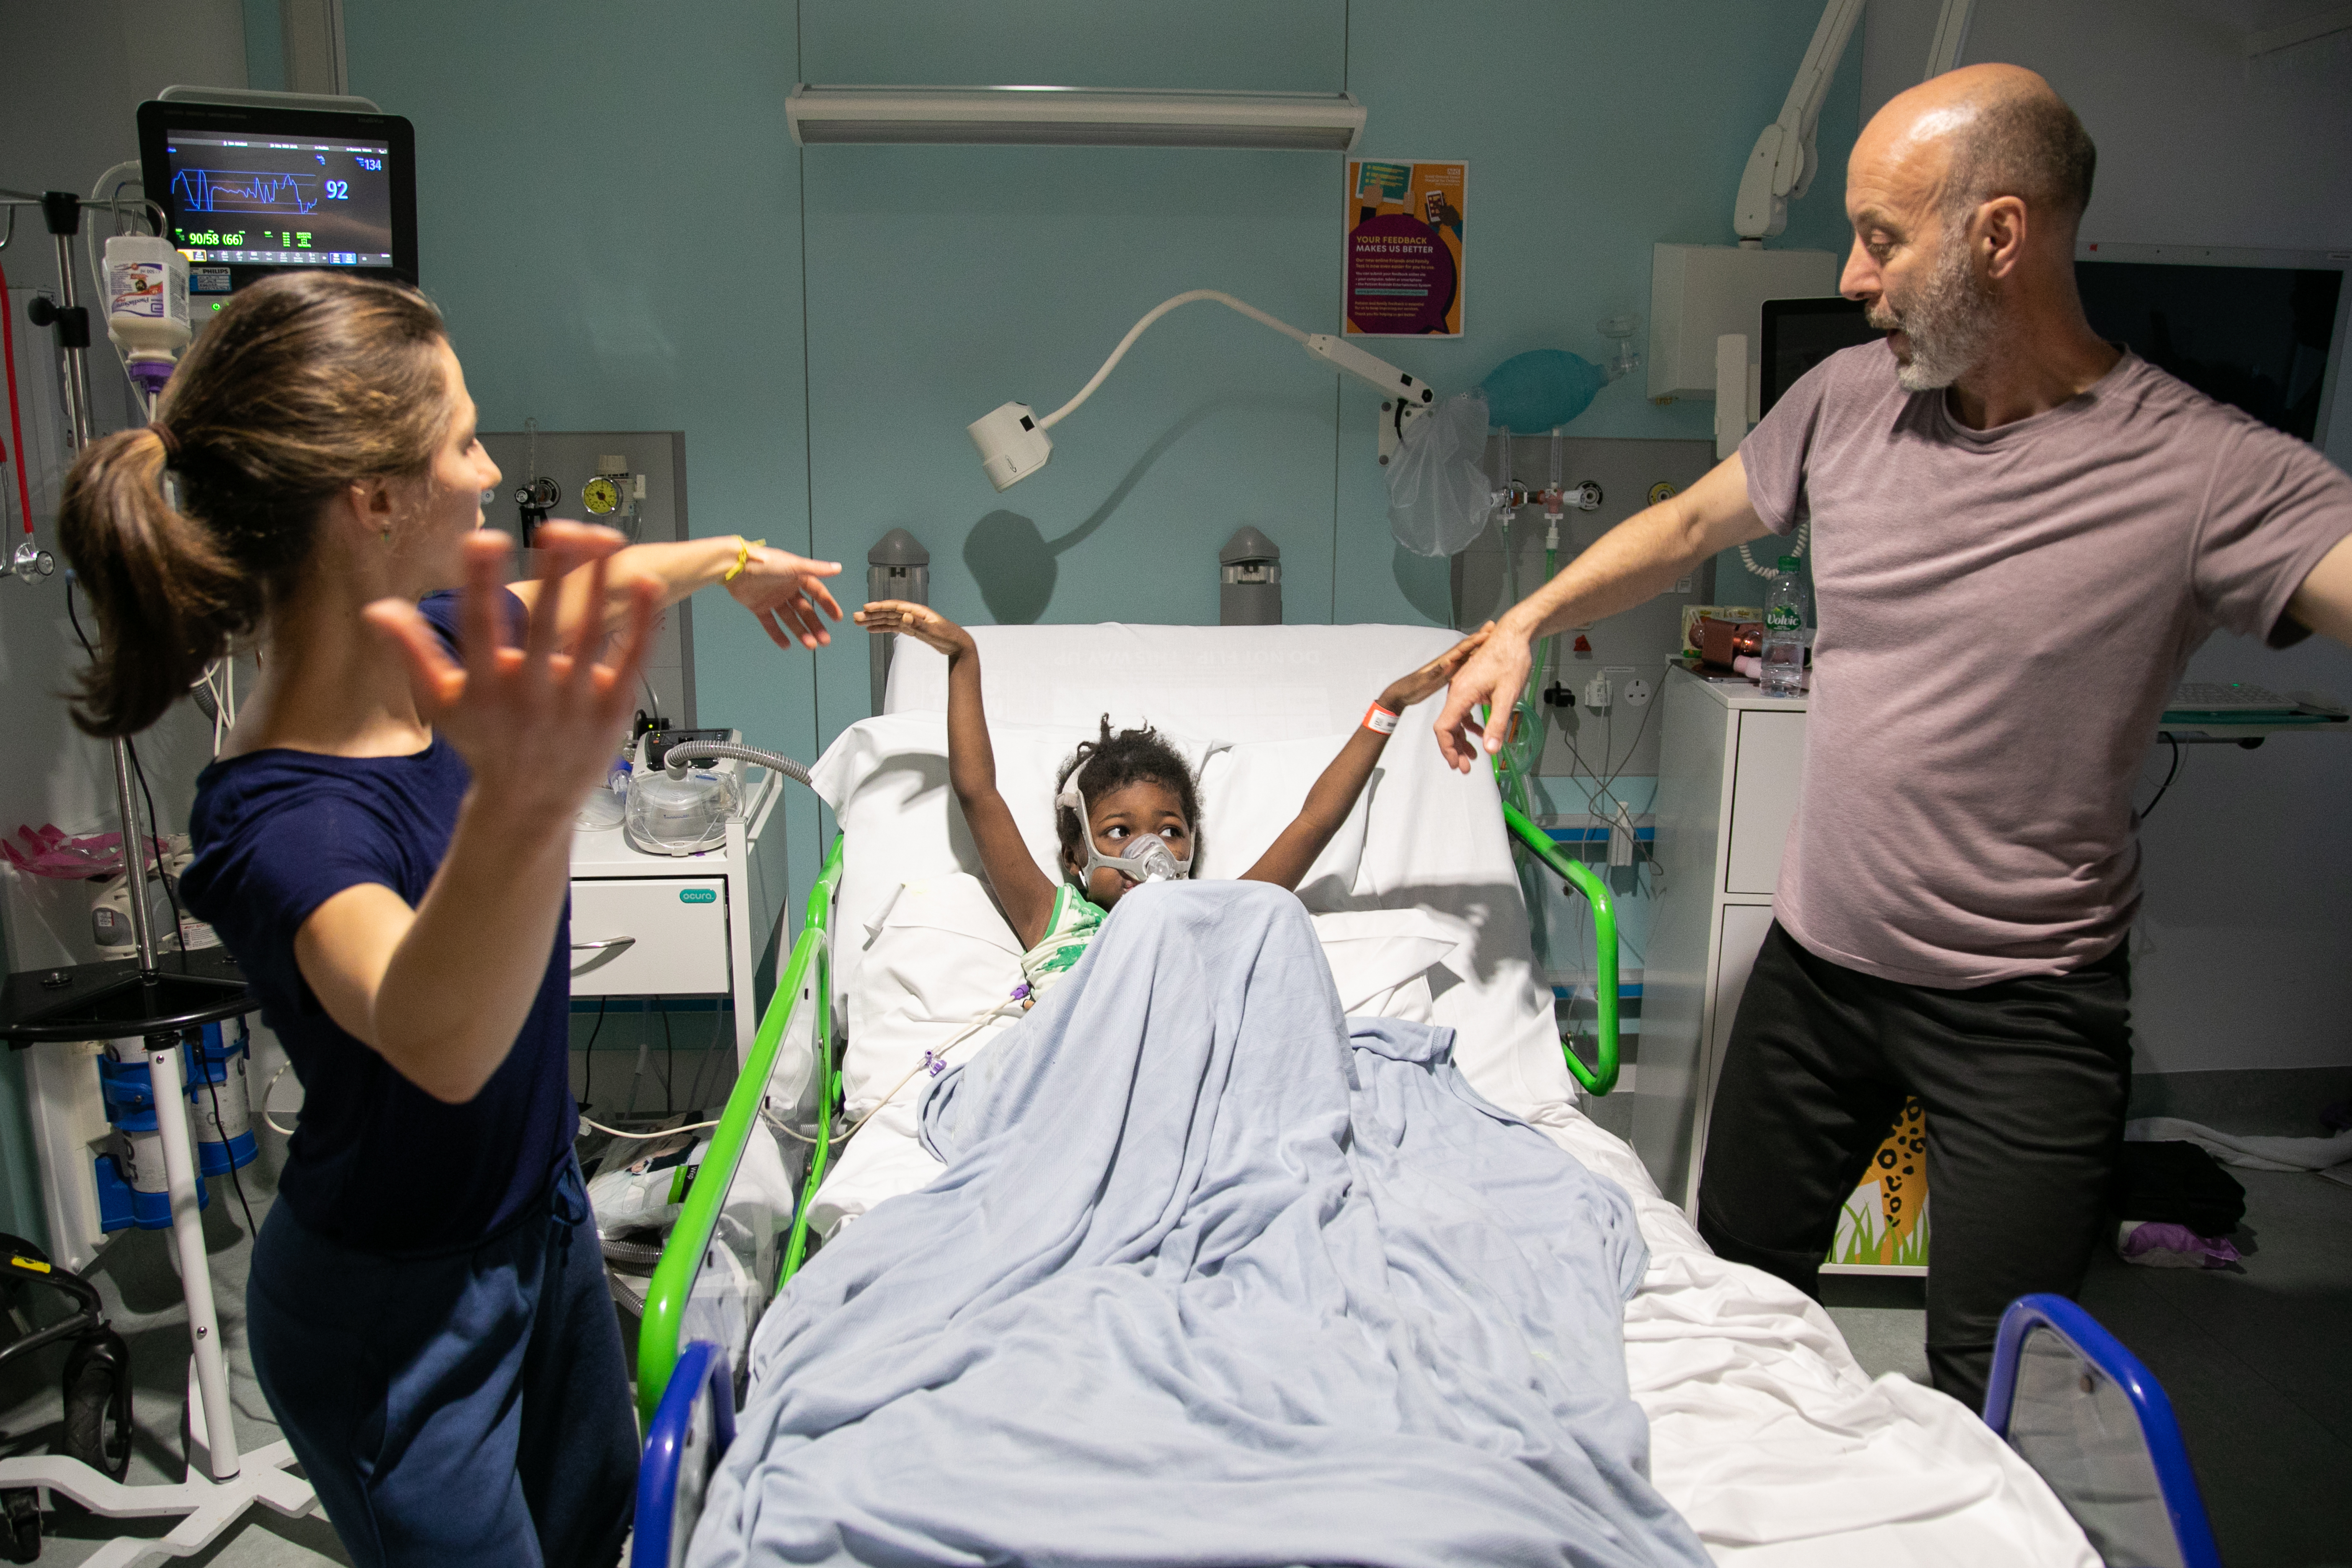 A child lies in a hospital bed with a performer stood on either side of them each holding one of their hands up.